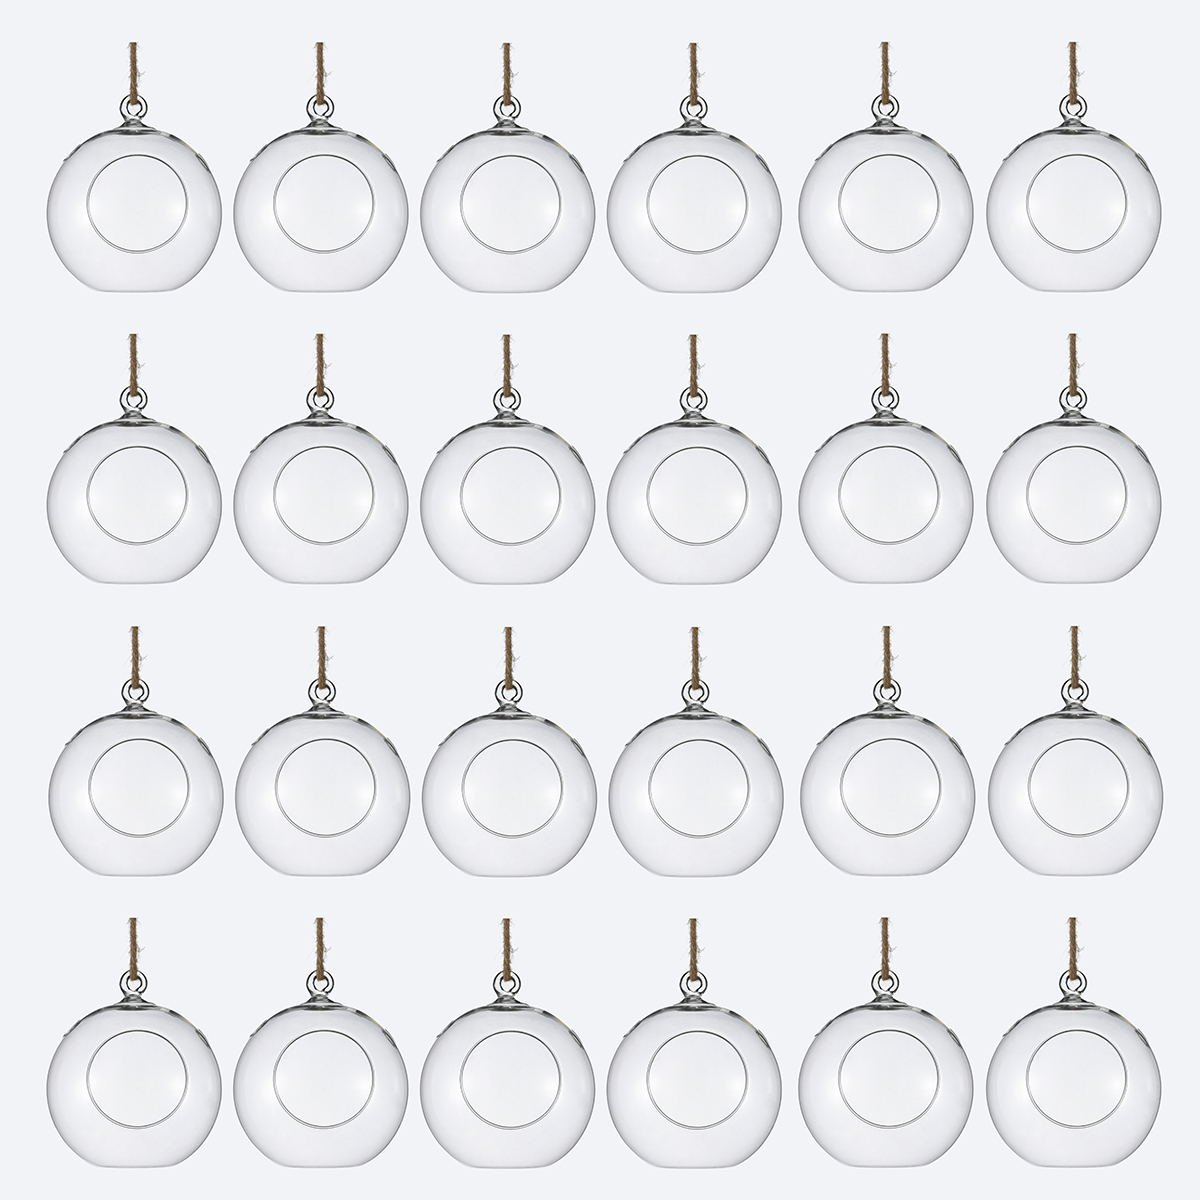 Package of 24 Clear Glass Orbs Terrarium Hanging Glass Candle Holders 8 CM Tea Light Holders Use For Succulent Gardening or Wedding Decorations